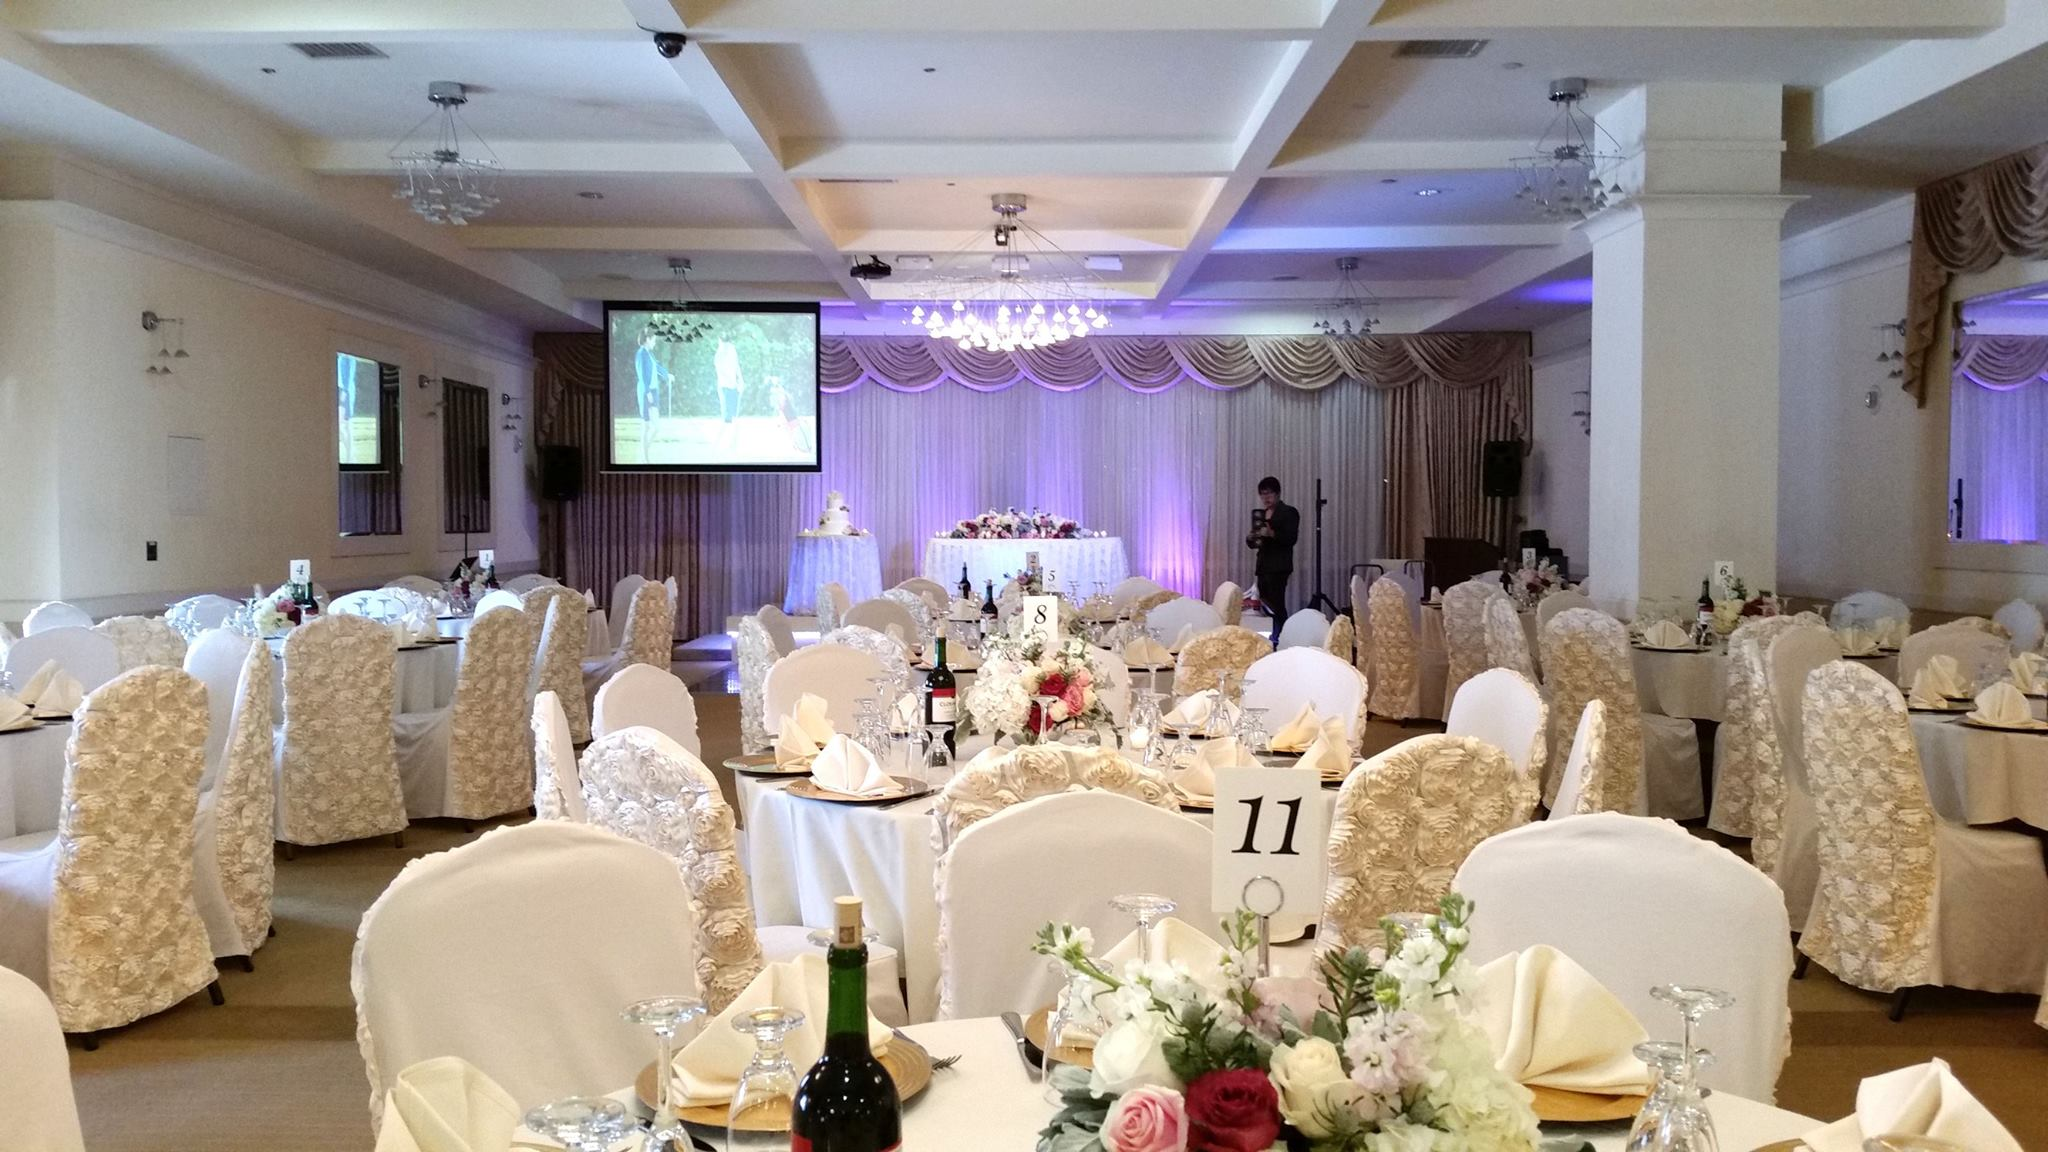 The One Banquet Hall